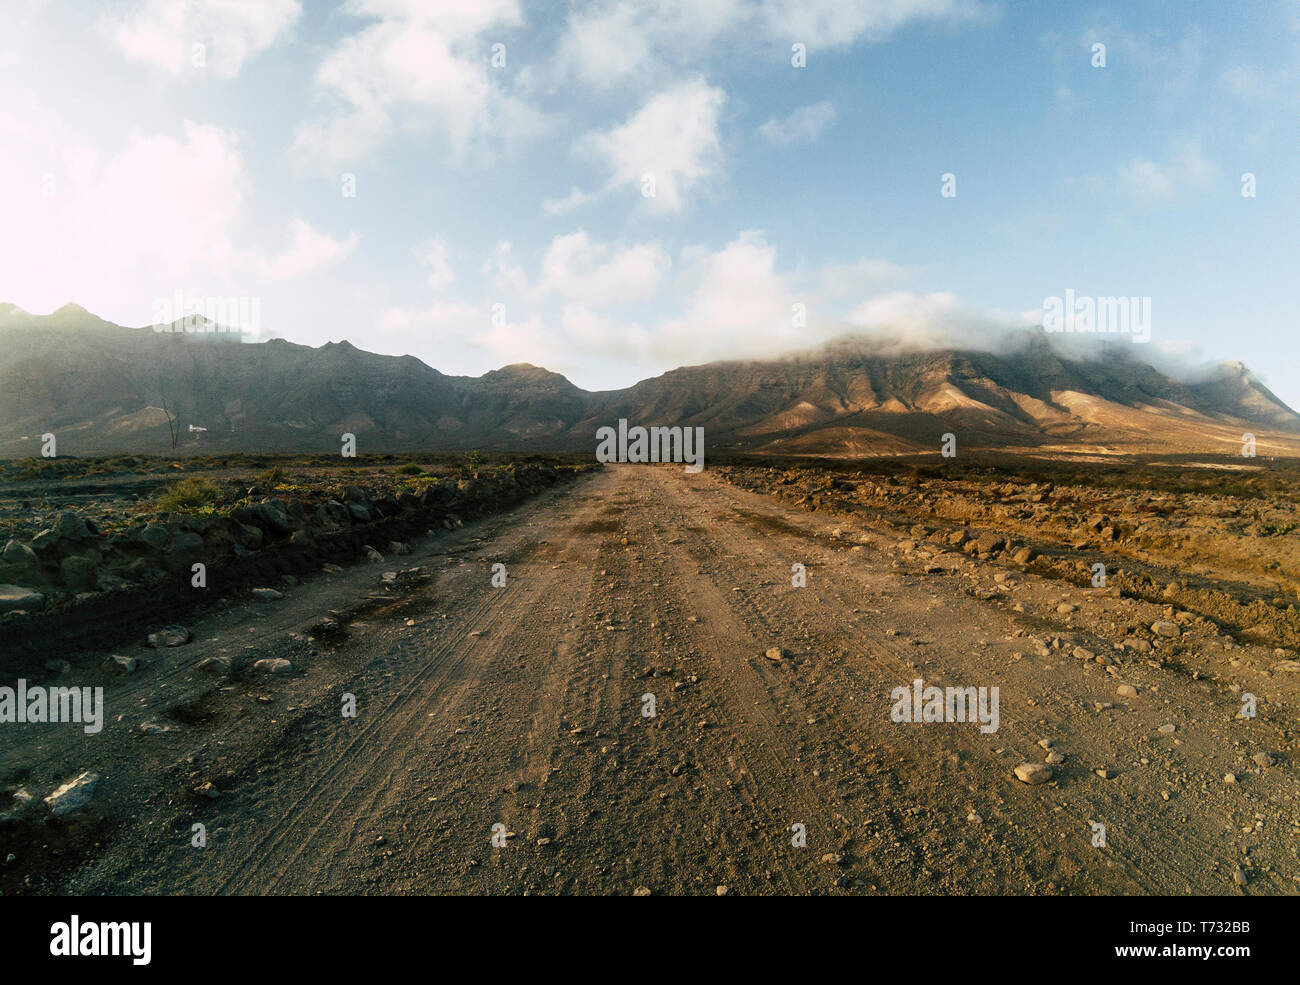 Long off road terrain way road viewed from ground level with mountains and blue cloudy sky - travel and adventure concept for alternative vacation and Stock Photo